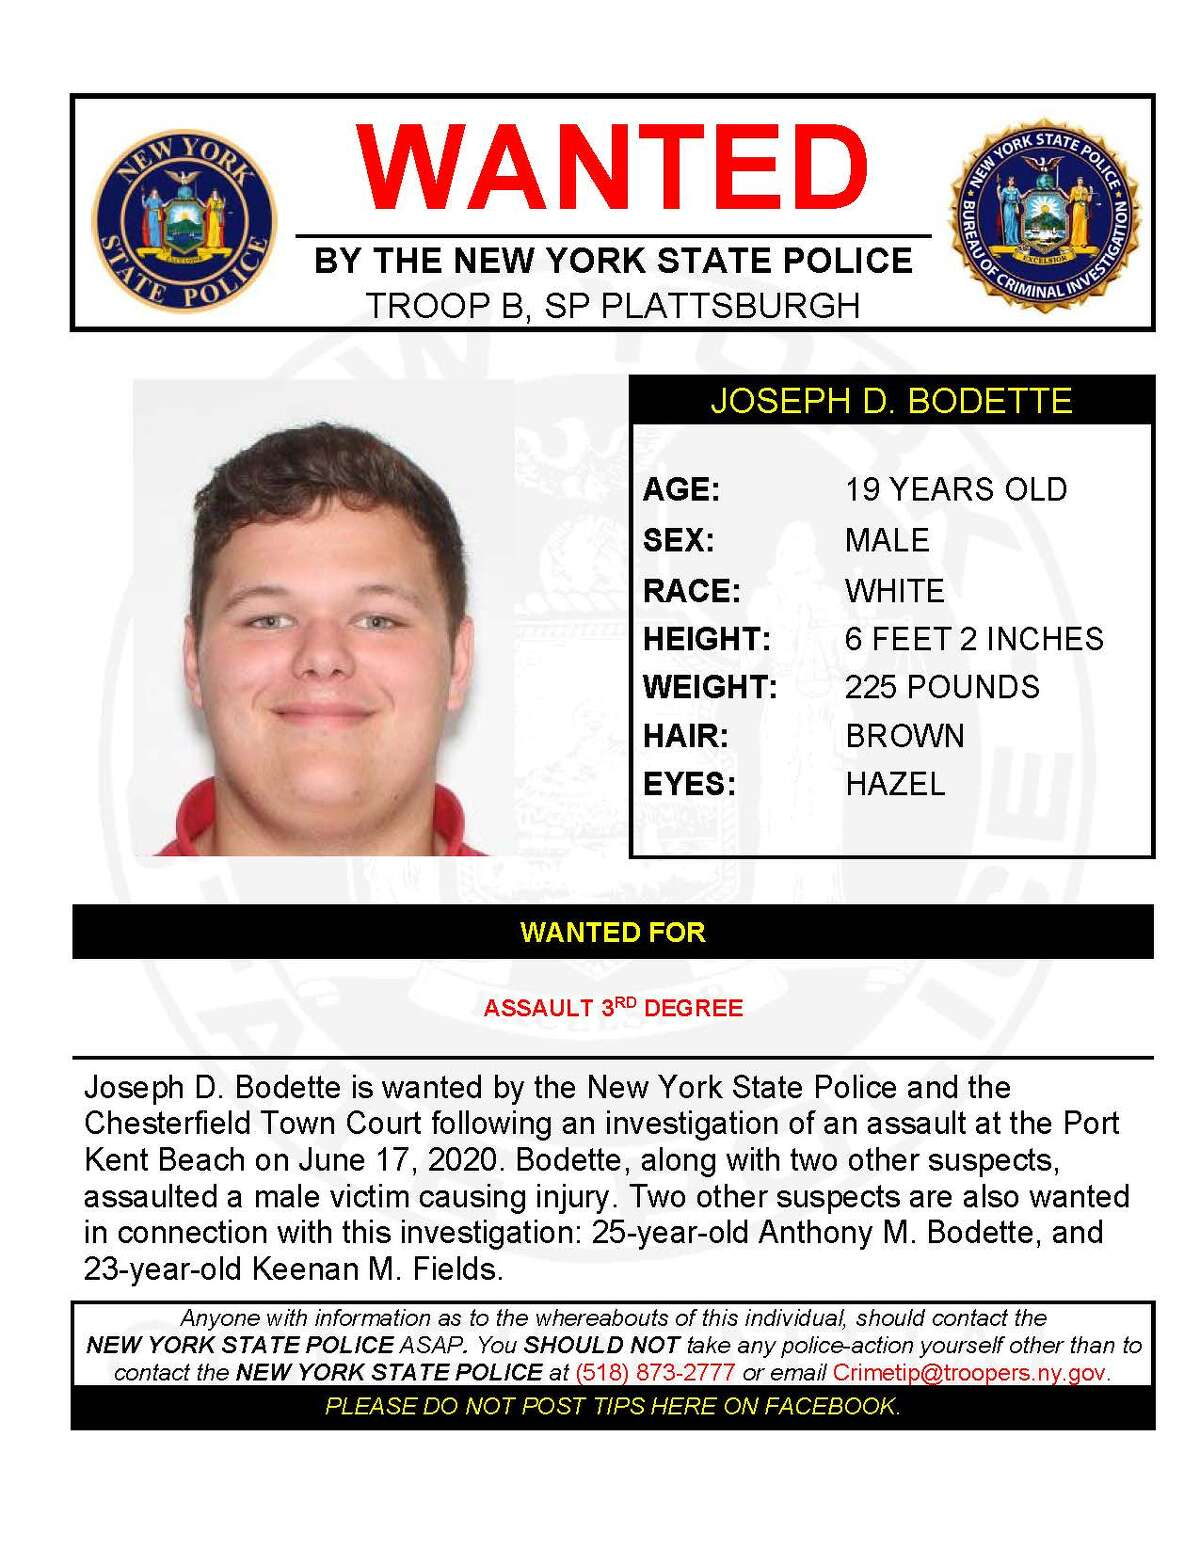 JOSEPH D. BODETTE Joseph D. Bodette is wanted by the New York State Police and the Chesterfield Town Court following an investigation of an assault at the Port Kent Beach on June 17, 2020. Bodette, along with two other suspects, assaulted a male victim causing injury. Two other suspects are also wanted in connection with this investigation: 25-year-old Anthony M. Bodette, and 23-year-old Keenan M. Fields.